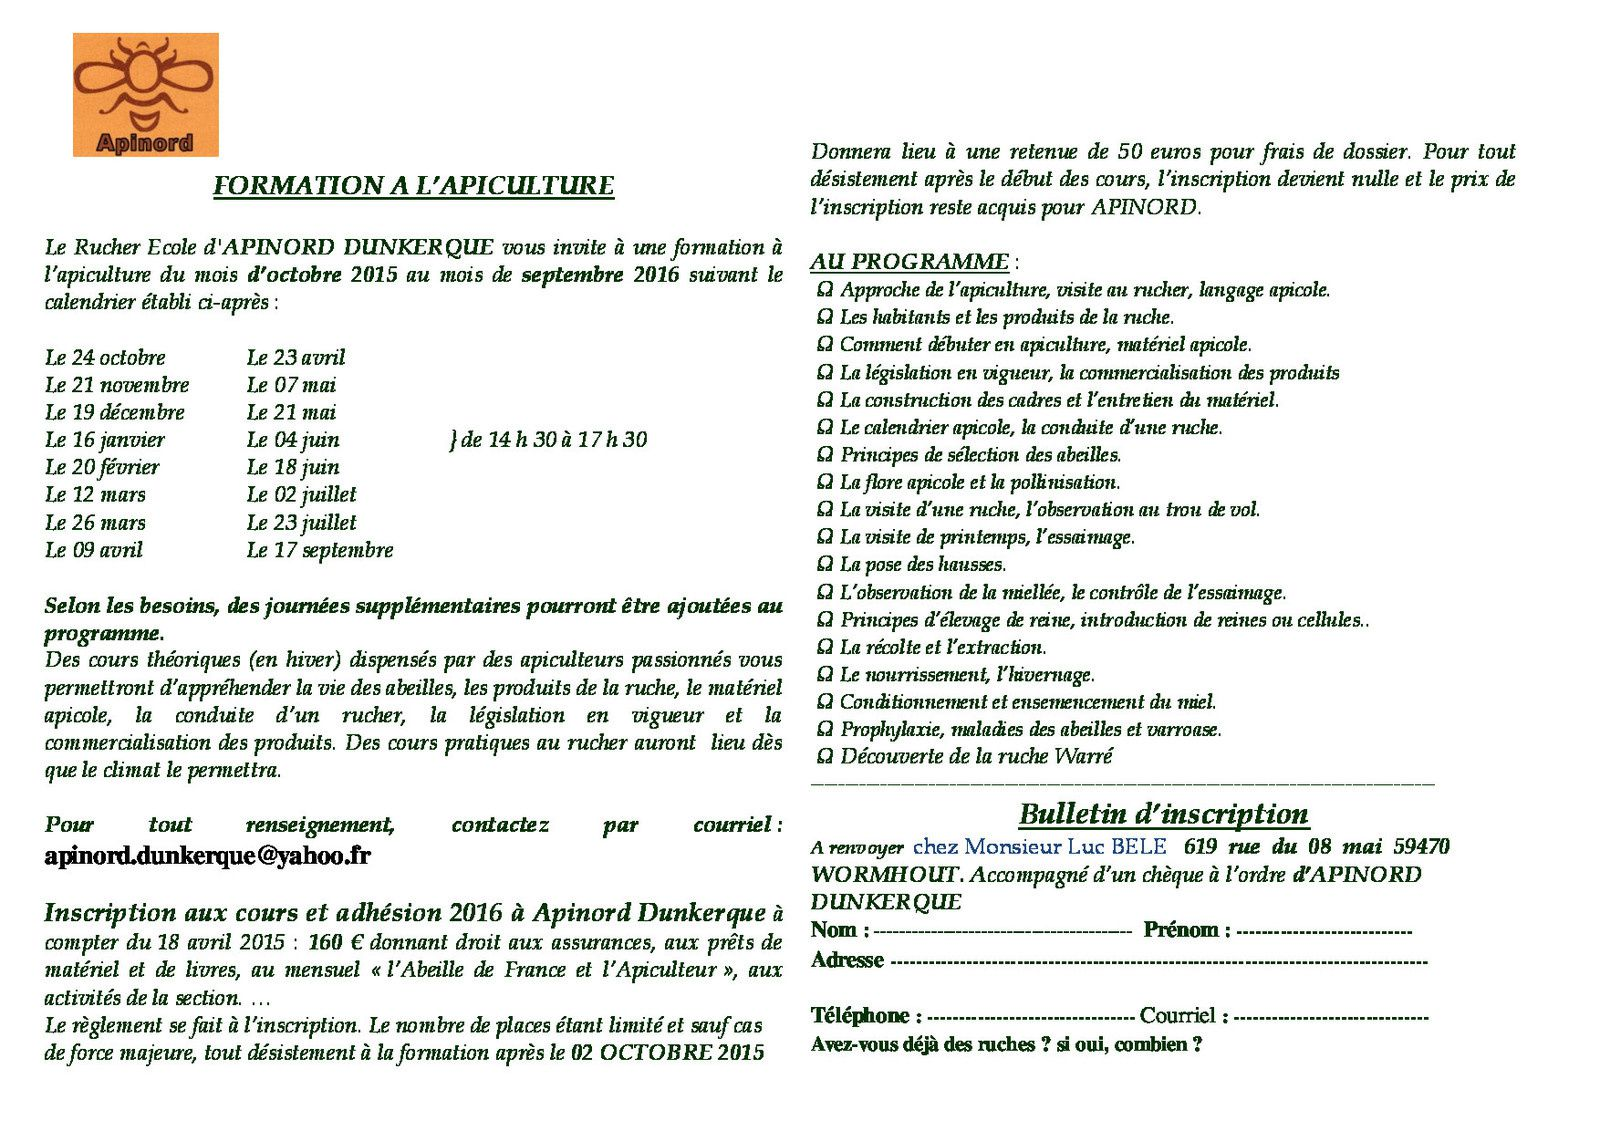 Apinord Dunkerque - Formation 2015-2016